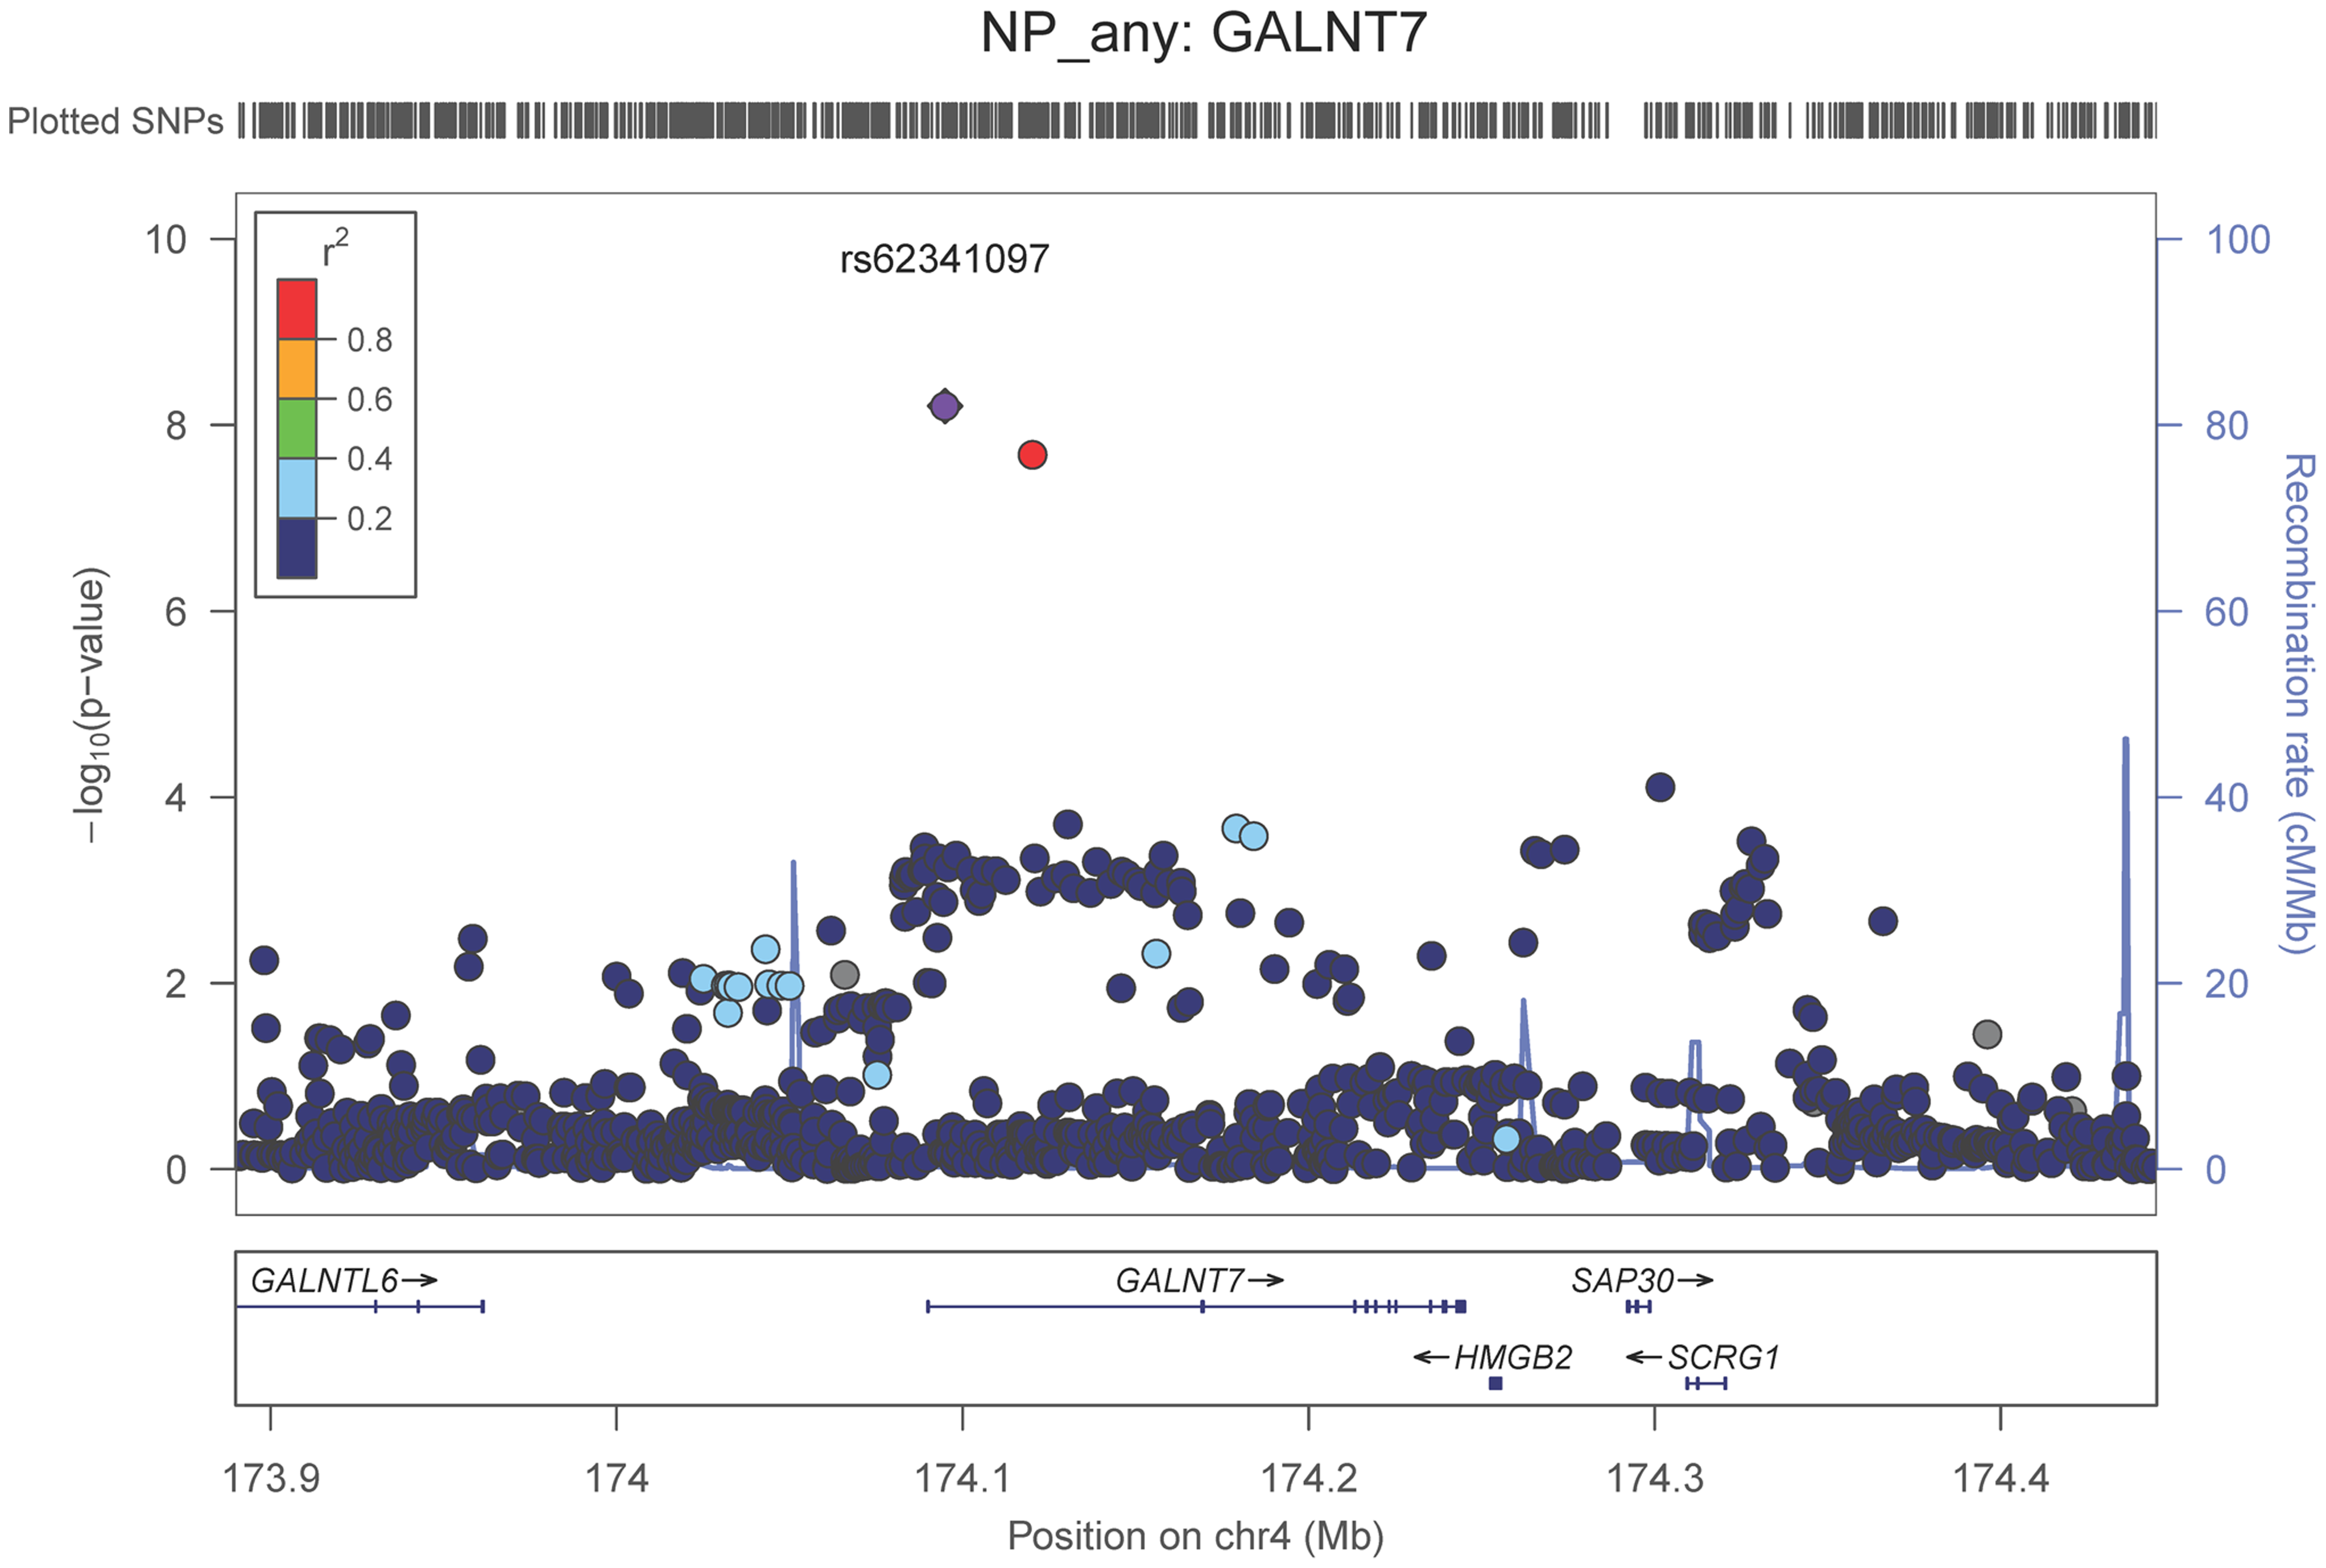 Regional association plot for <i>GALNT7</i> and the neuritic plaque (any vs. none) analysis.